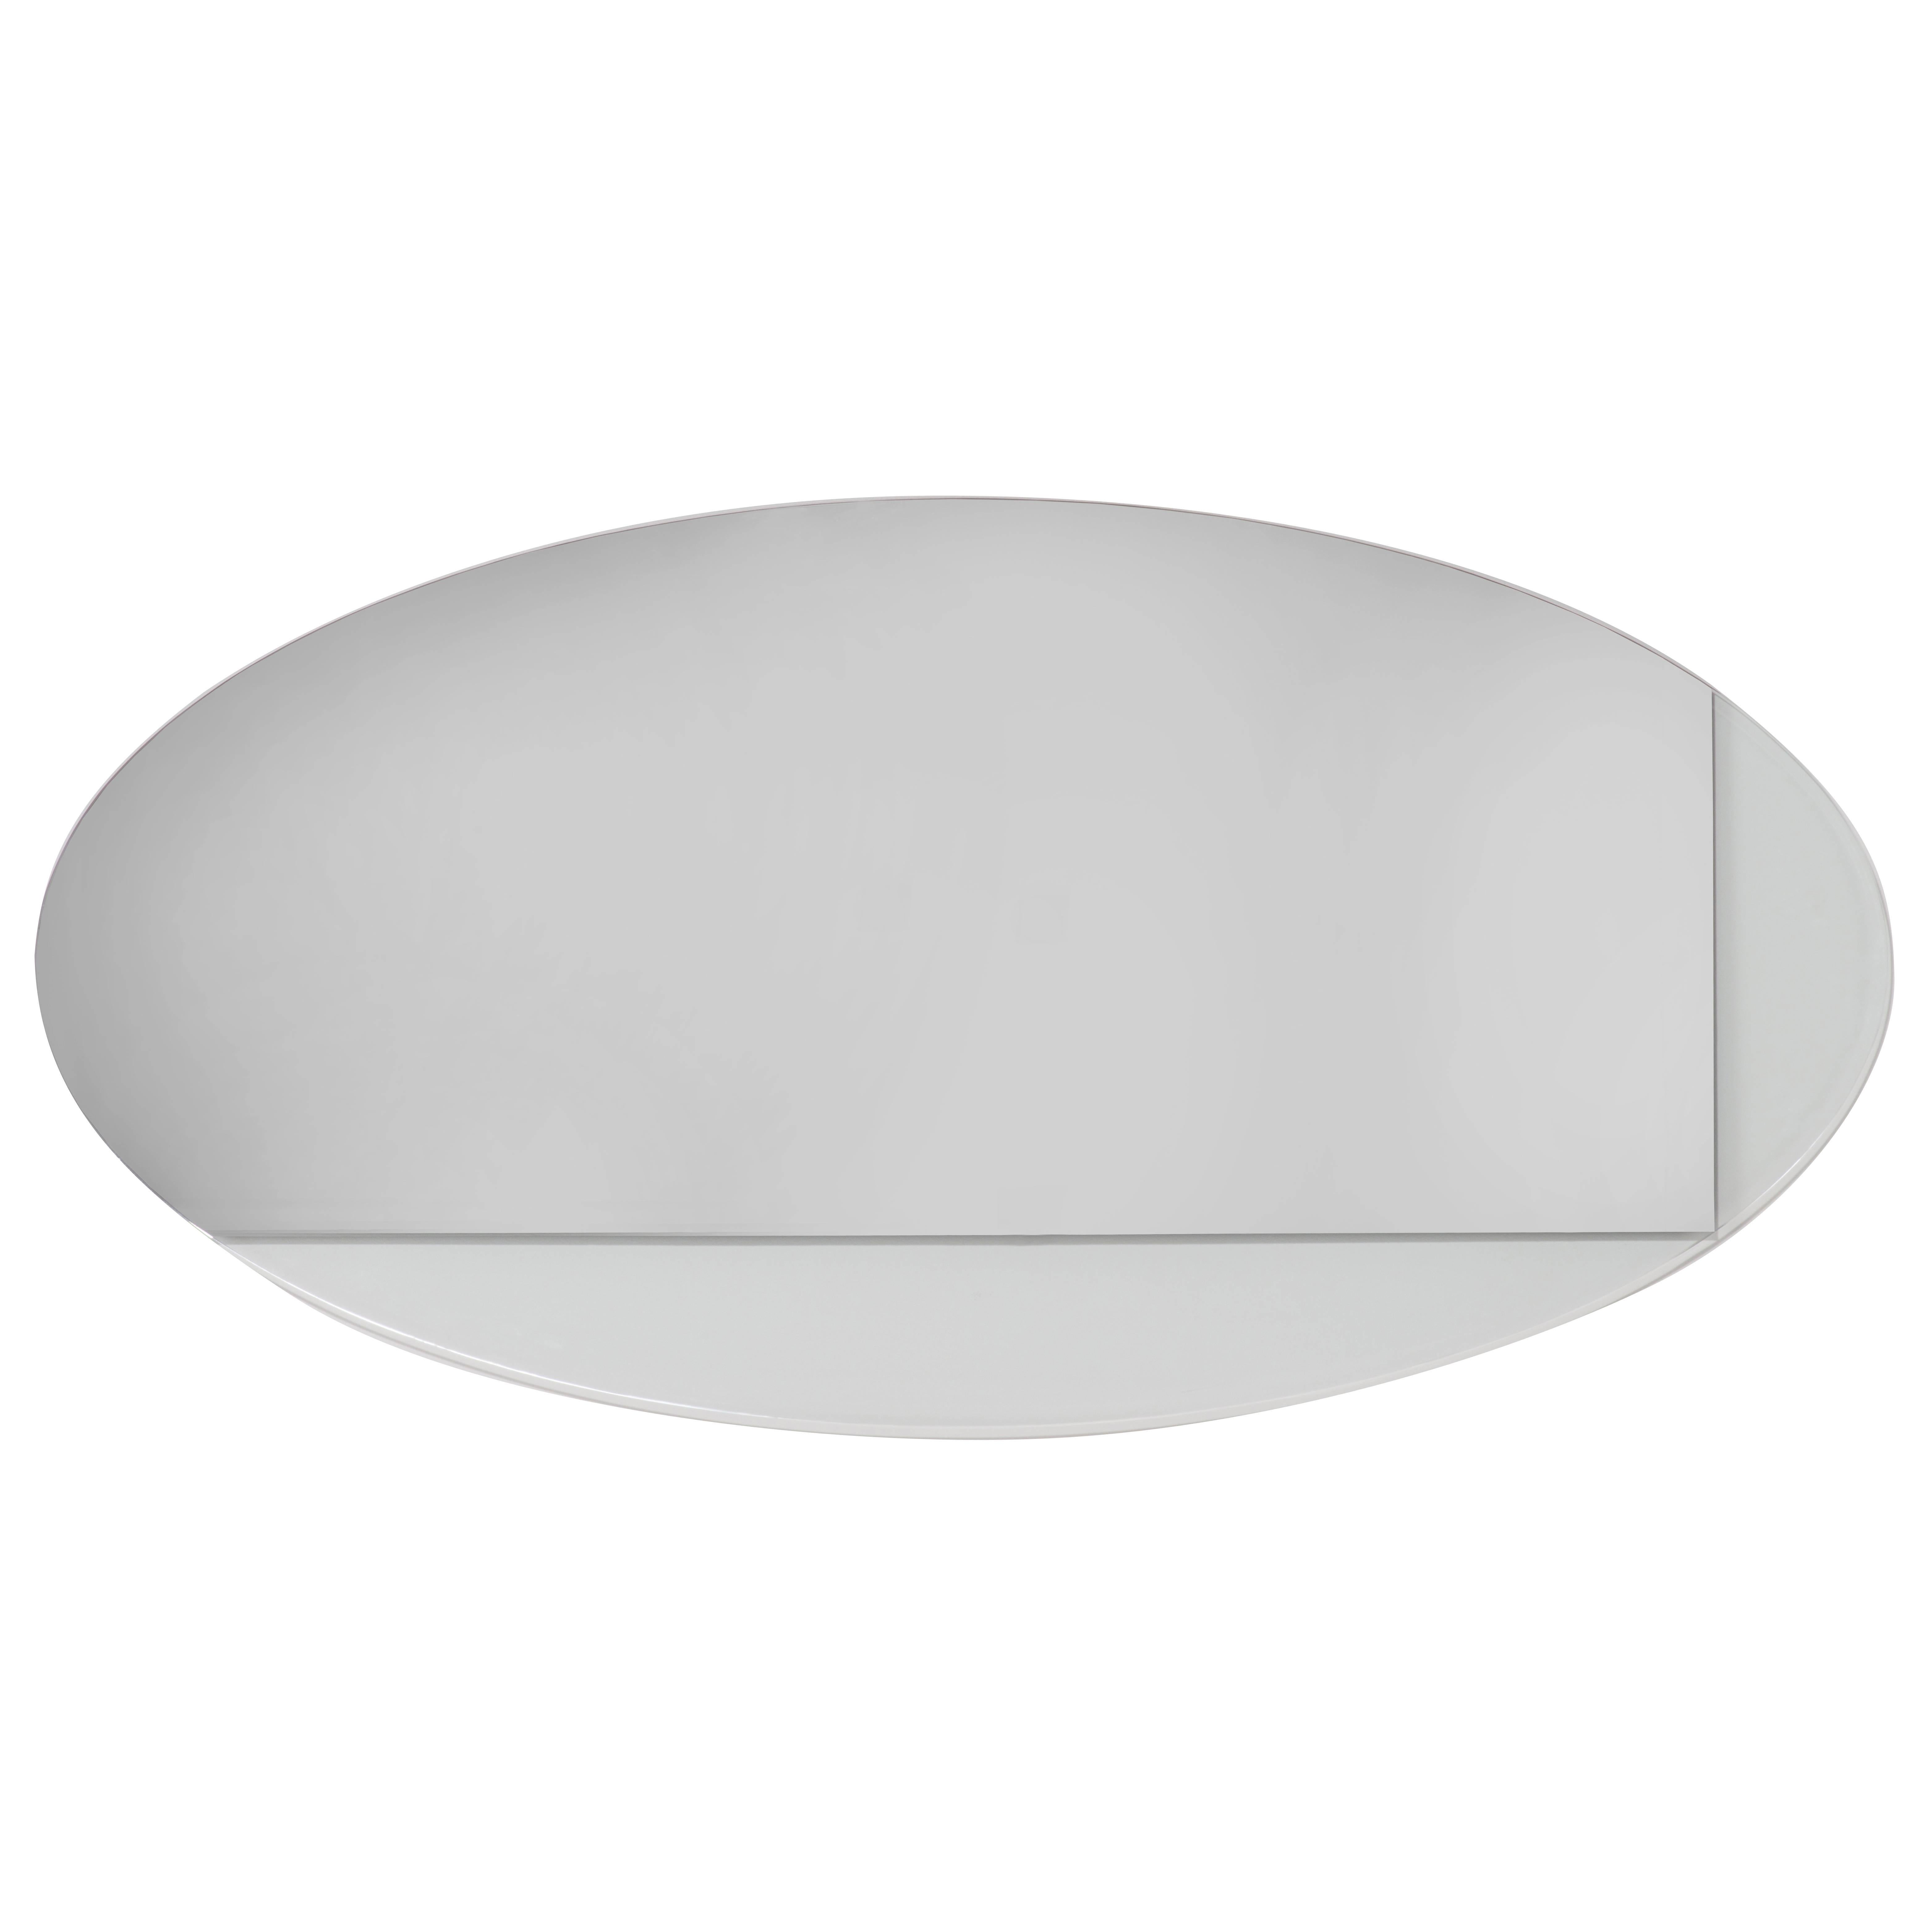 Large Oval Mirror with removal - Ida Mirror Collection Contemporary Oval